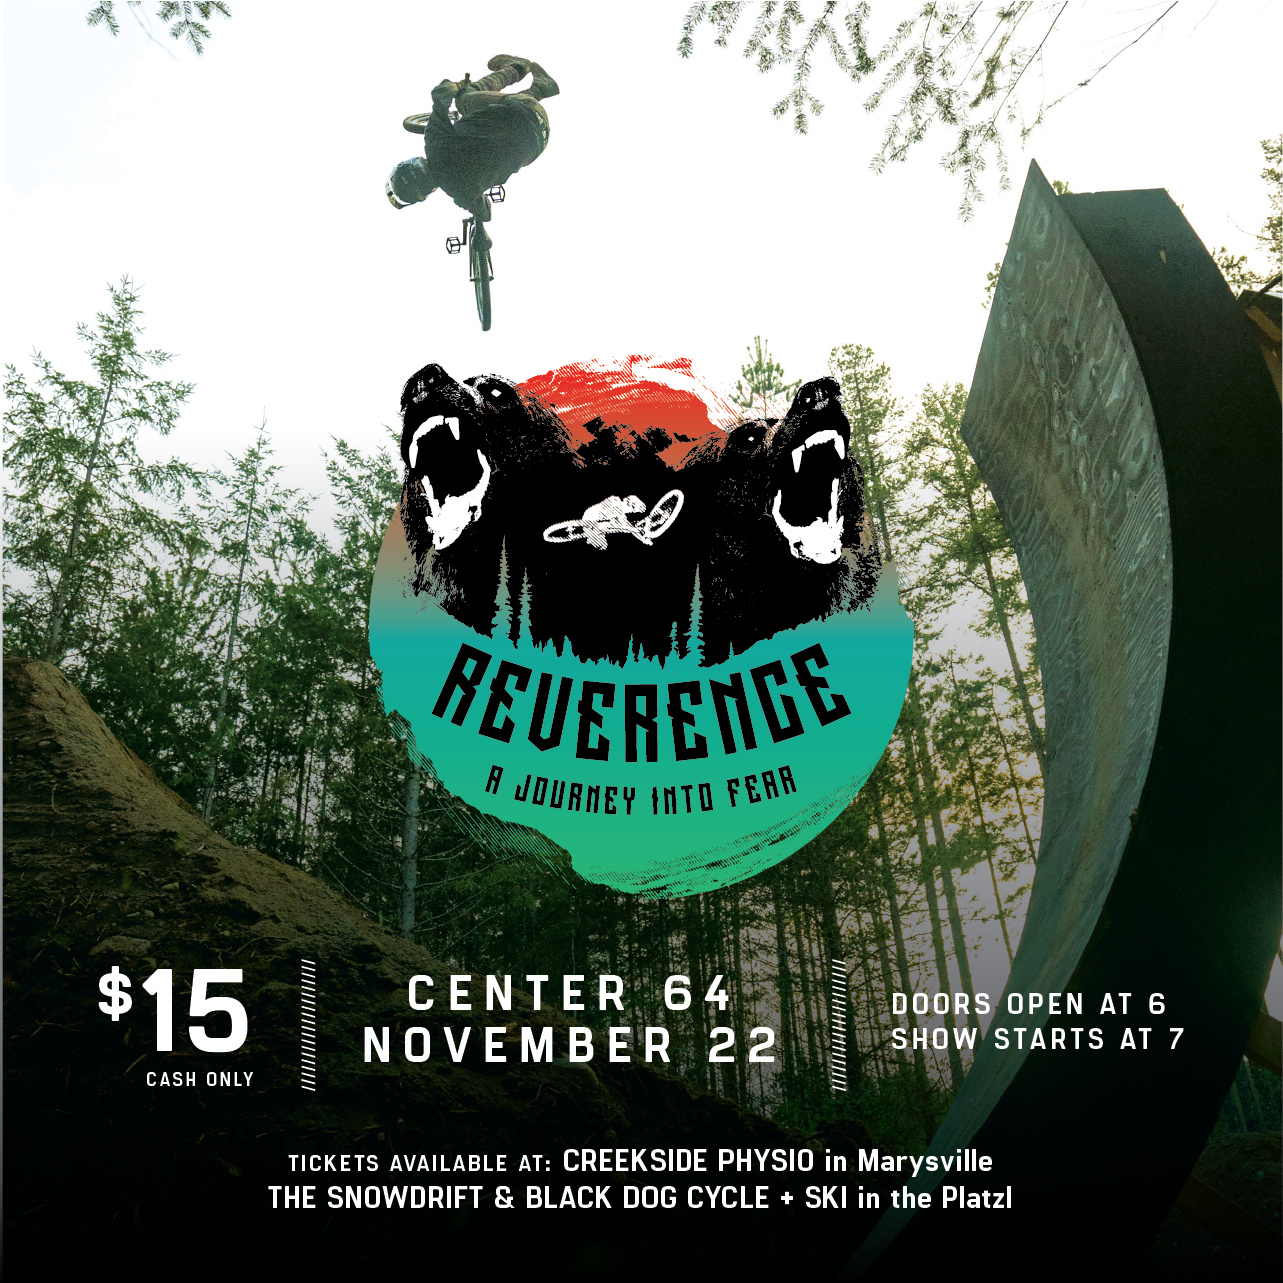 This year's  KIMBERLEY BIKE PARK FUNDRAISER —which features the world premiere of Reverence—is happening on Thursday, November 22nd, 6pm at Centre 64 to be more exact.